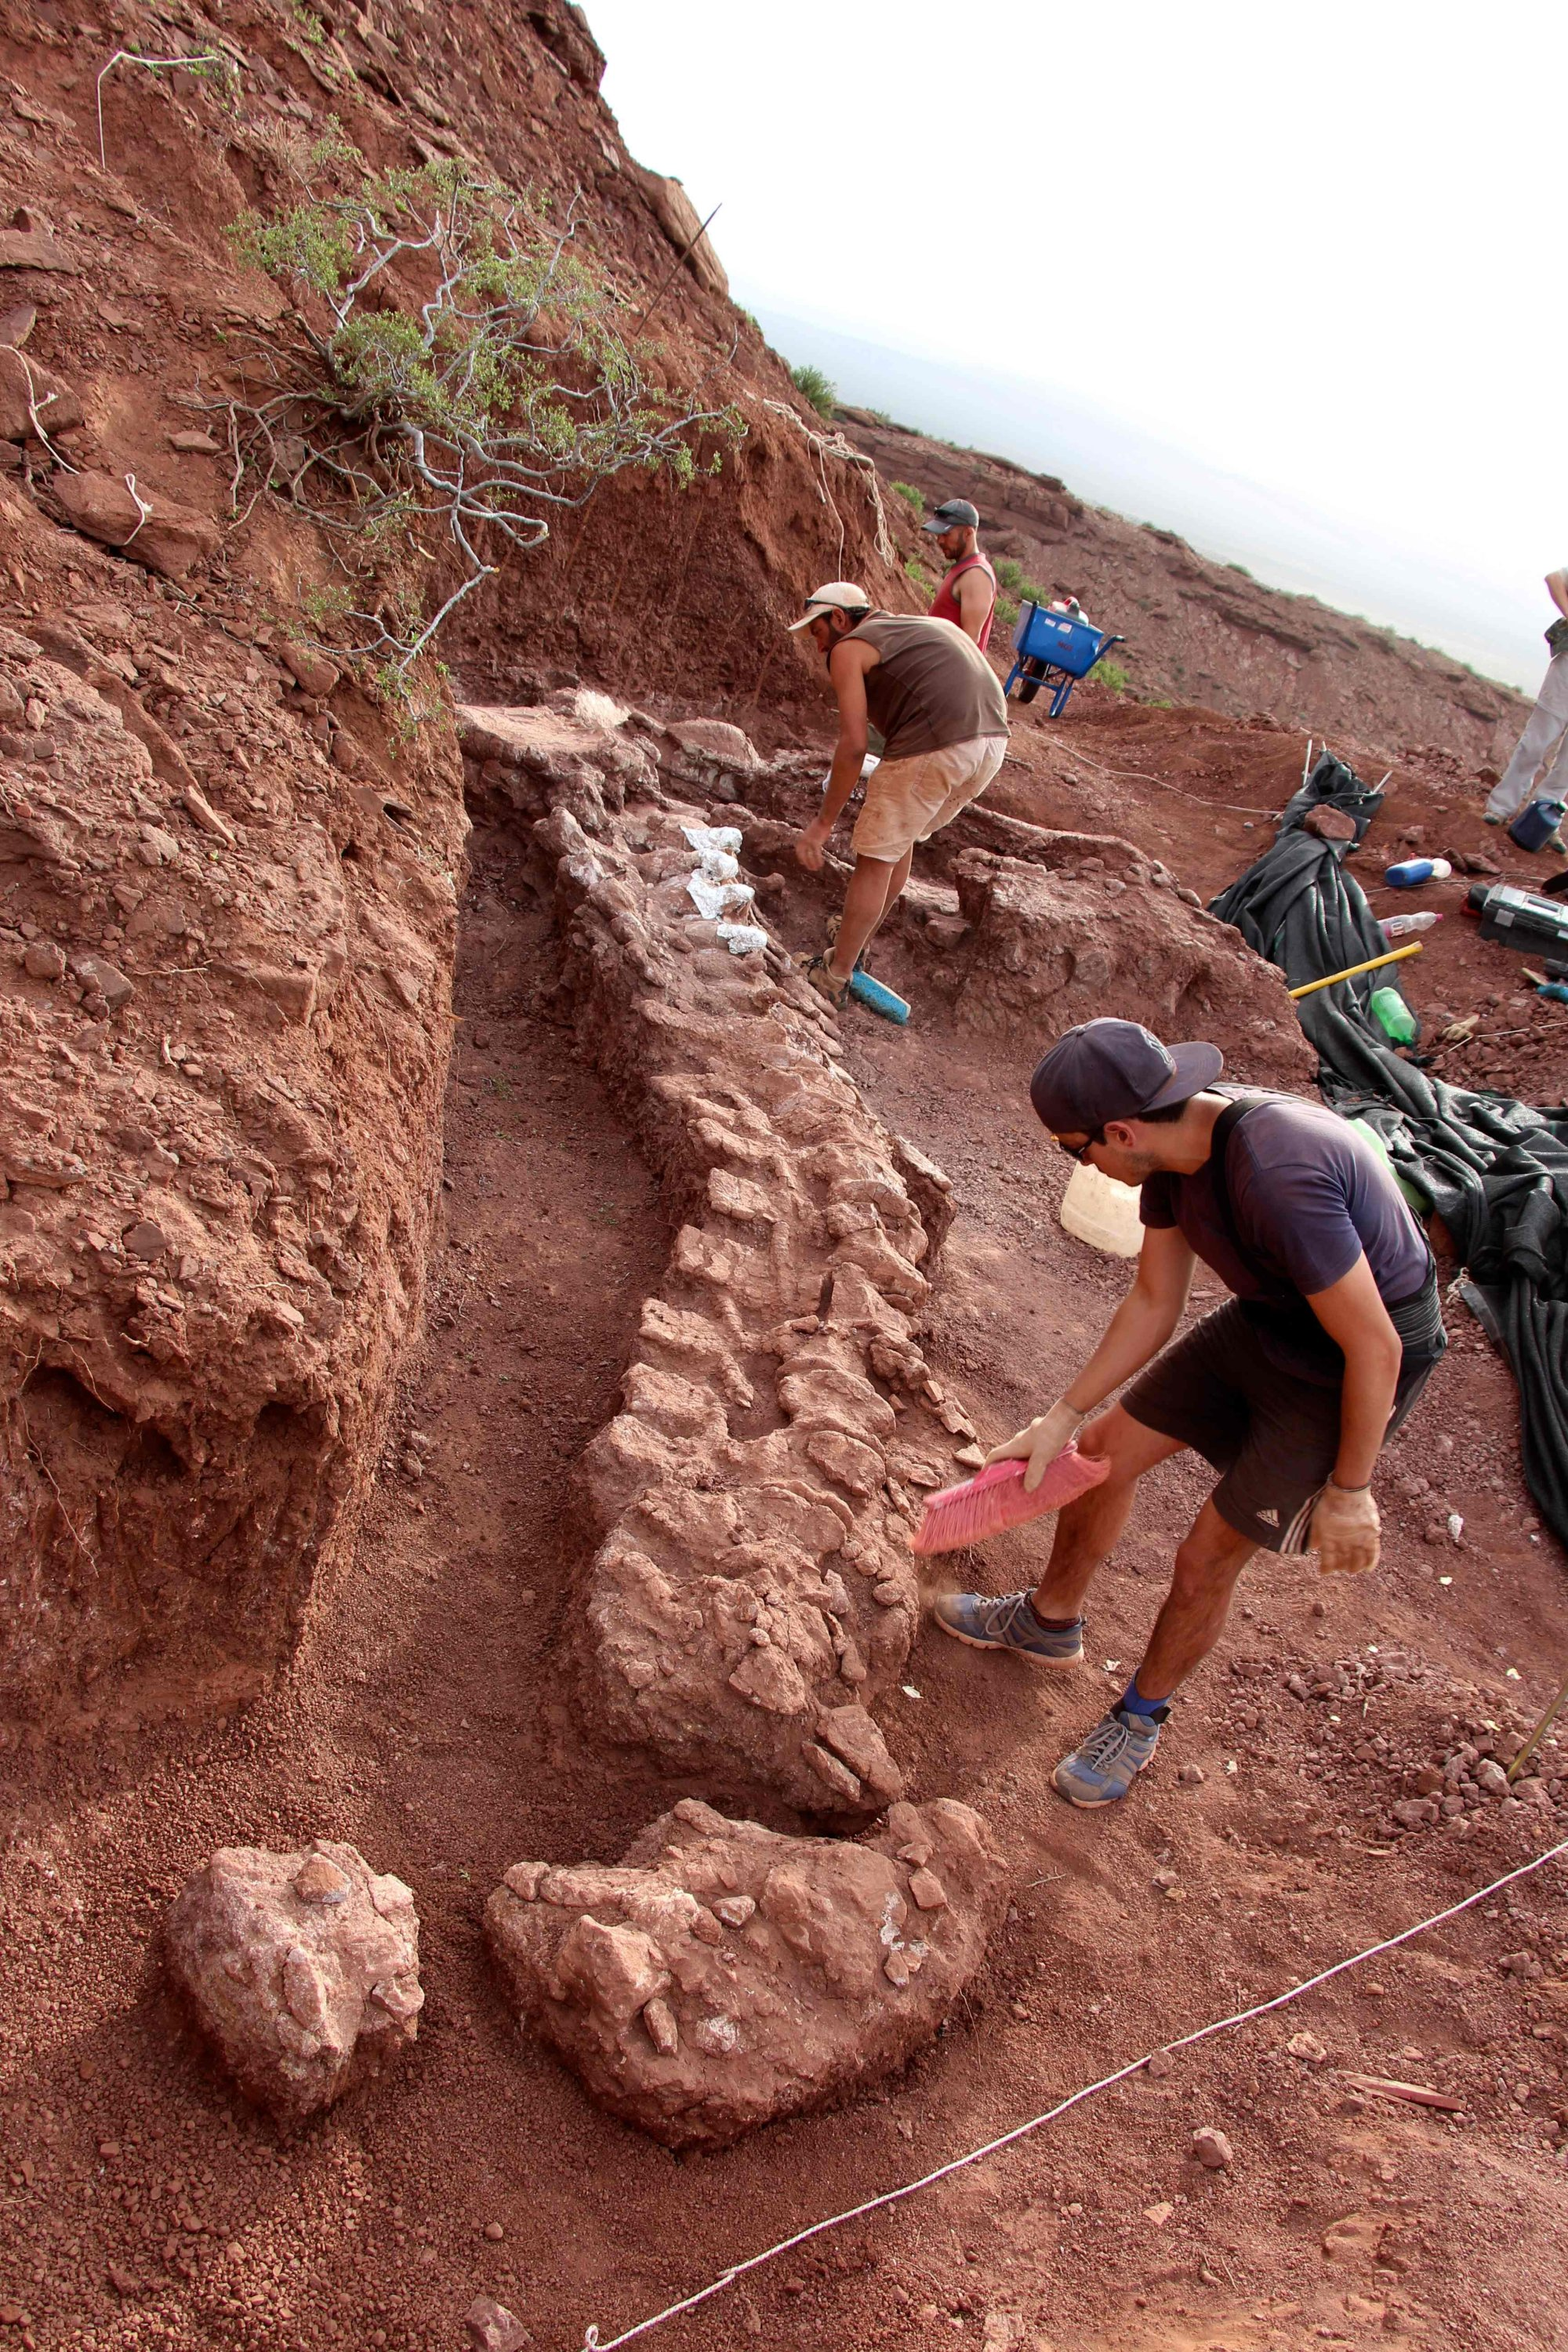 In this photo released by the CTyS-UNLaM Science Outreach Agency, paleontologists work during an excavation in which 98-million-year-old fossils were found at the Candeleros Formation in the Neuquen River Valley in southwest Argentina, Jan. 20, 2021. (Jose Luis Carballido/CTyS-UNLaM via AFP)